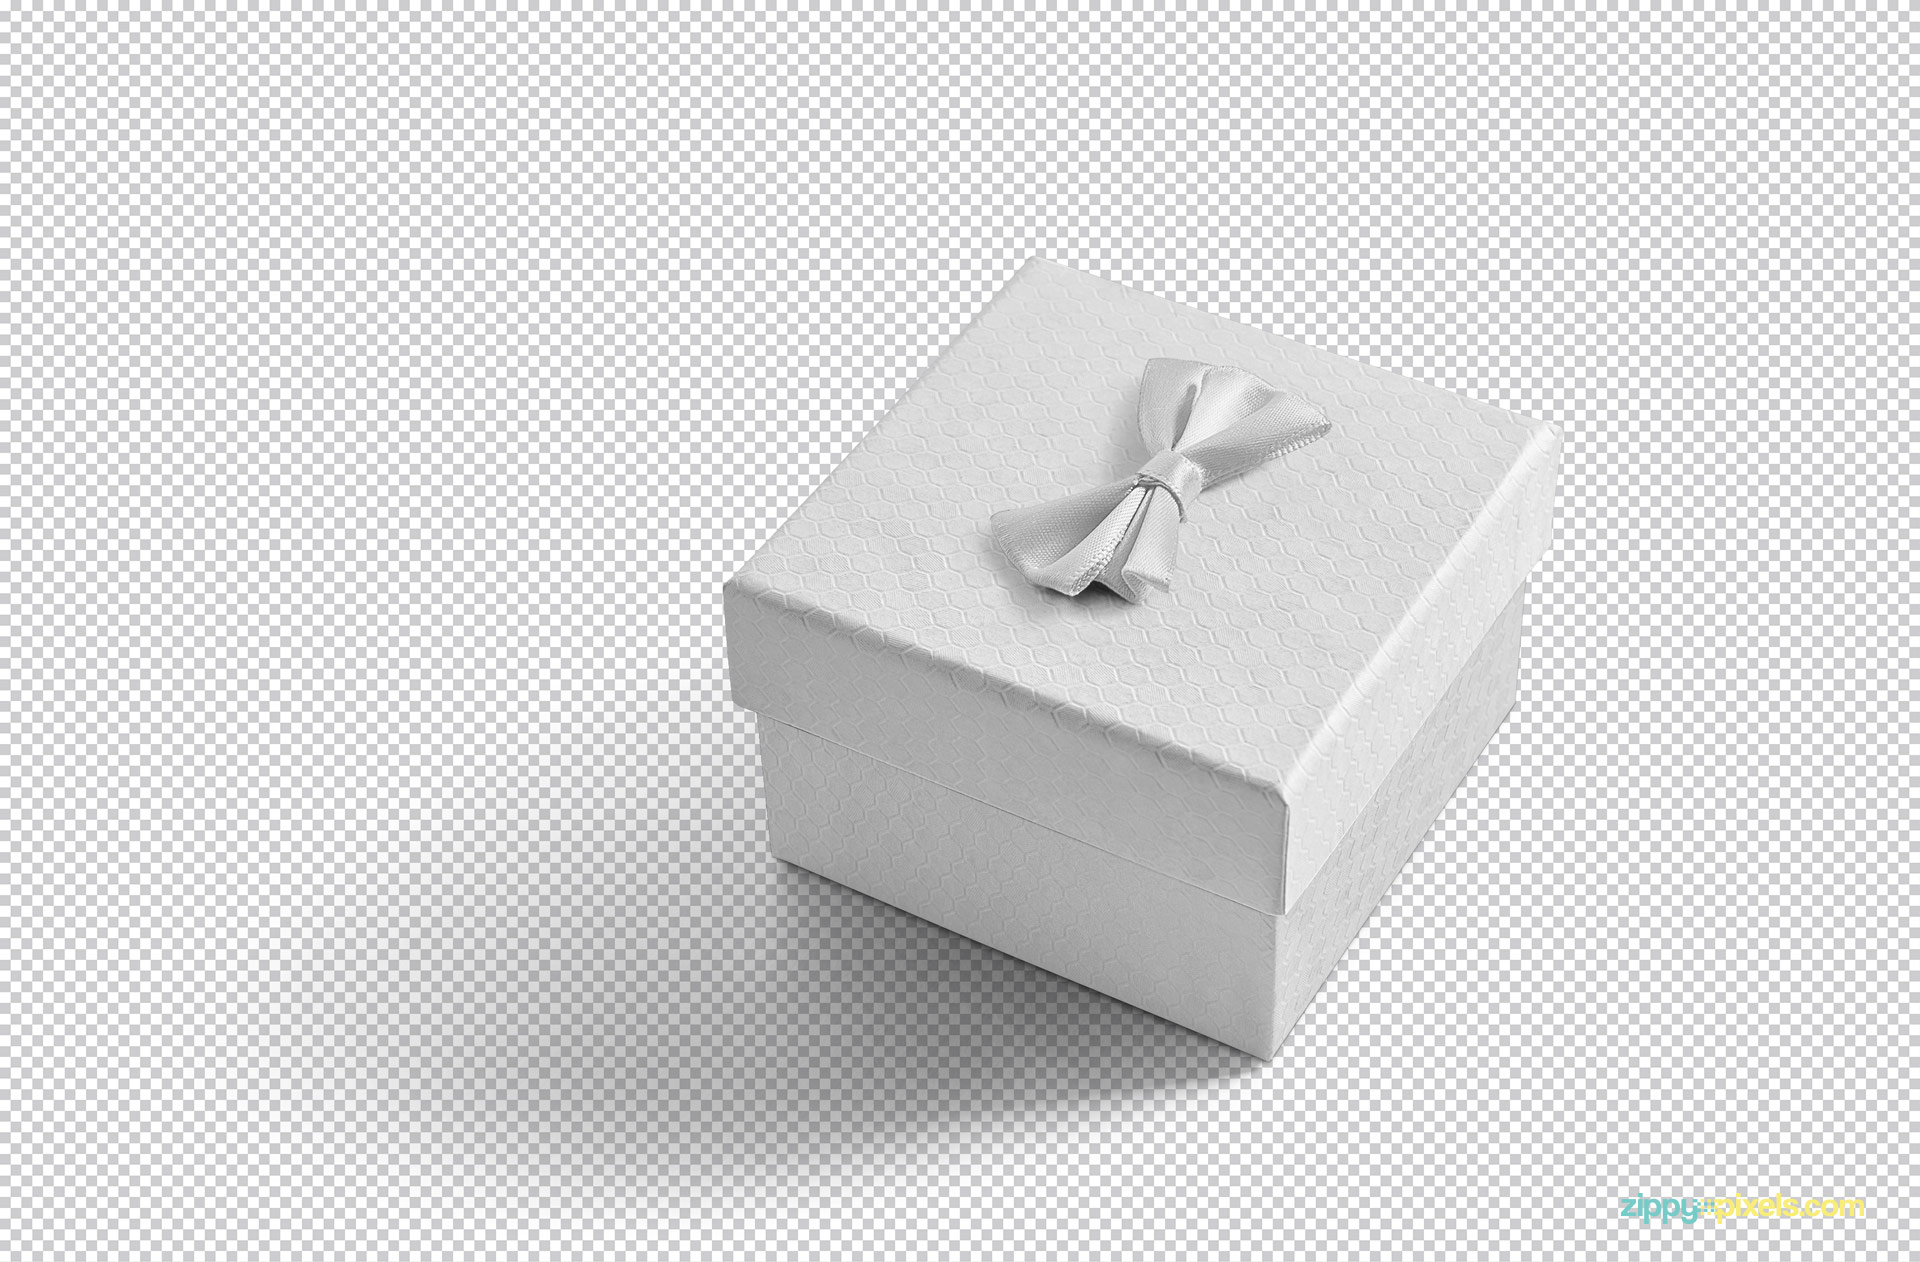 You can customize this gift packaging box mockup in Adobe Photoshop as per your liking.